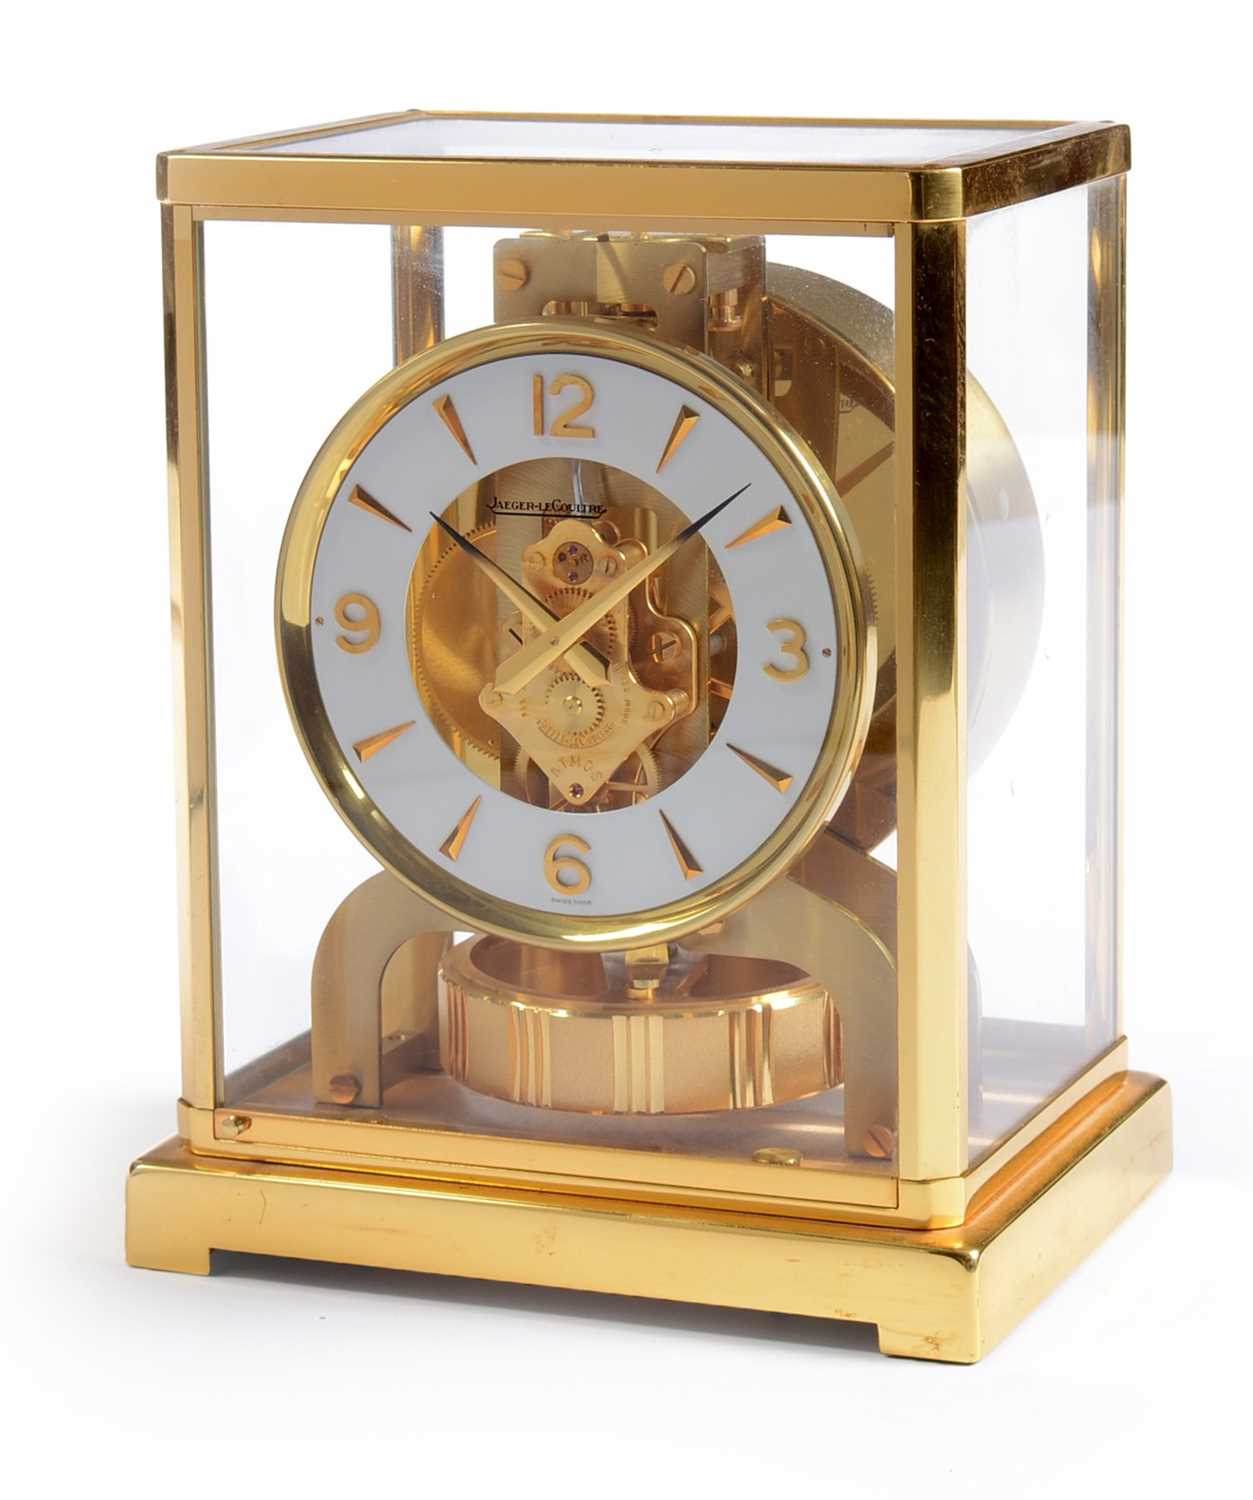 A 20th Century Jaeger Le Coultre Atmos clock